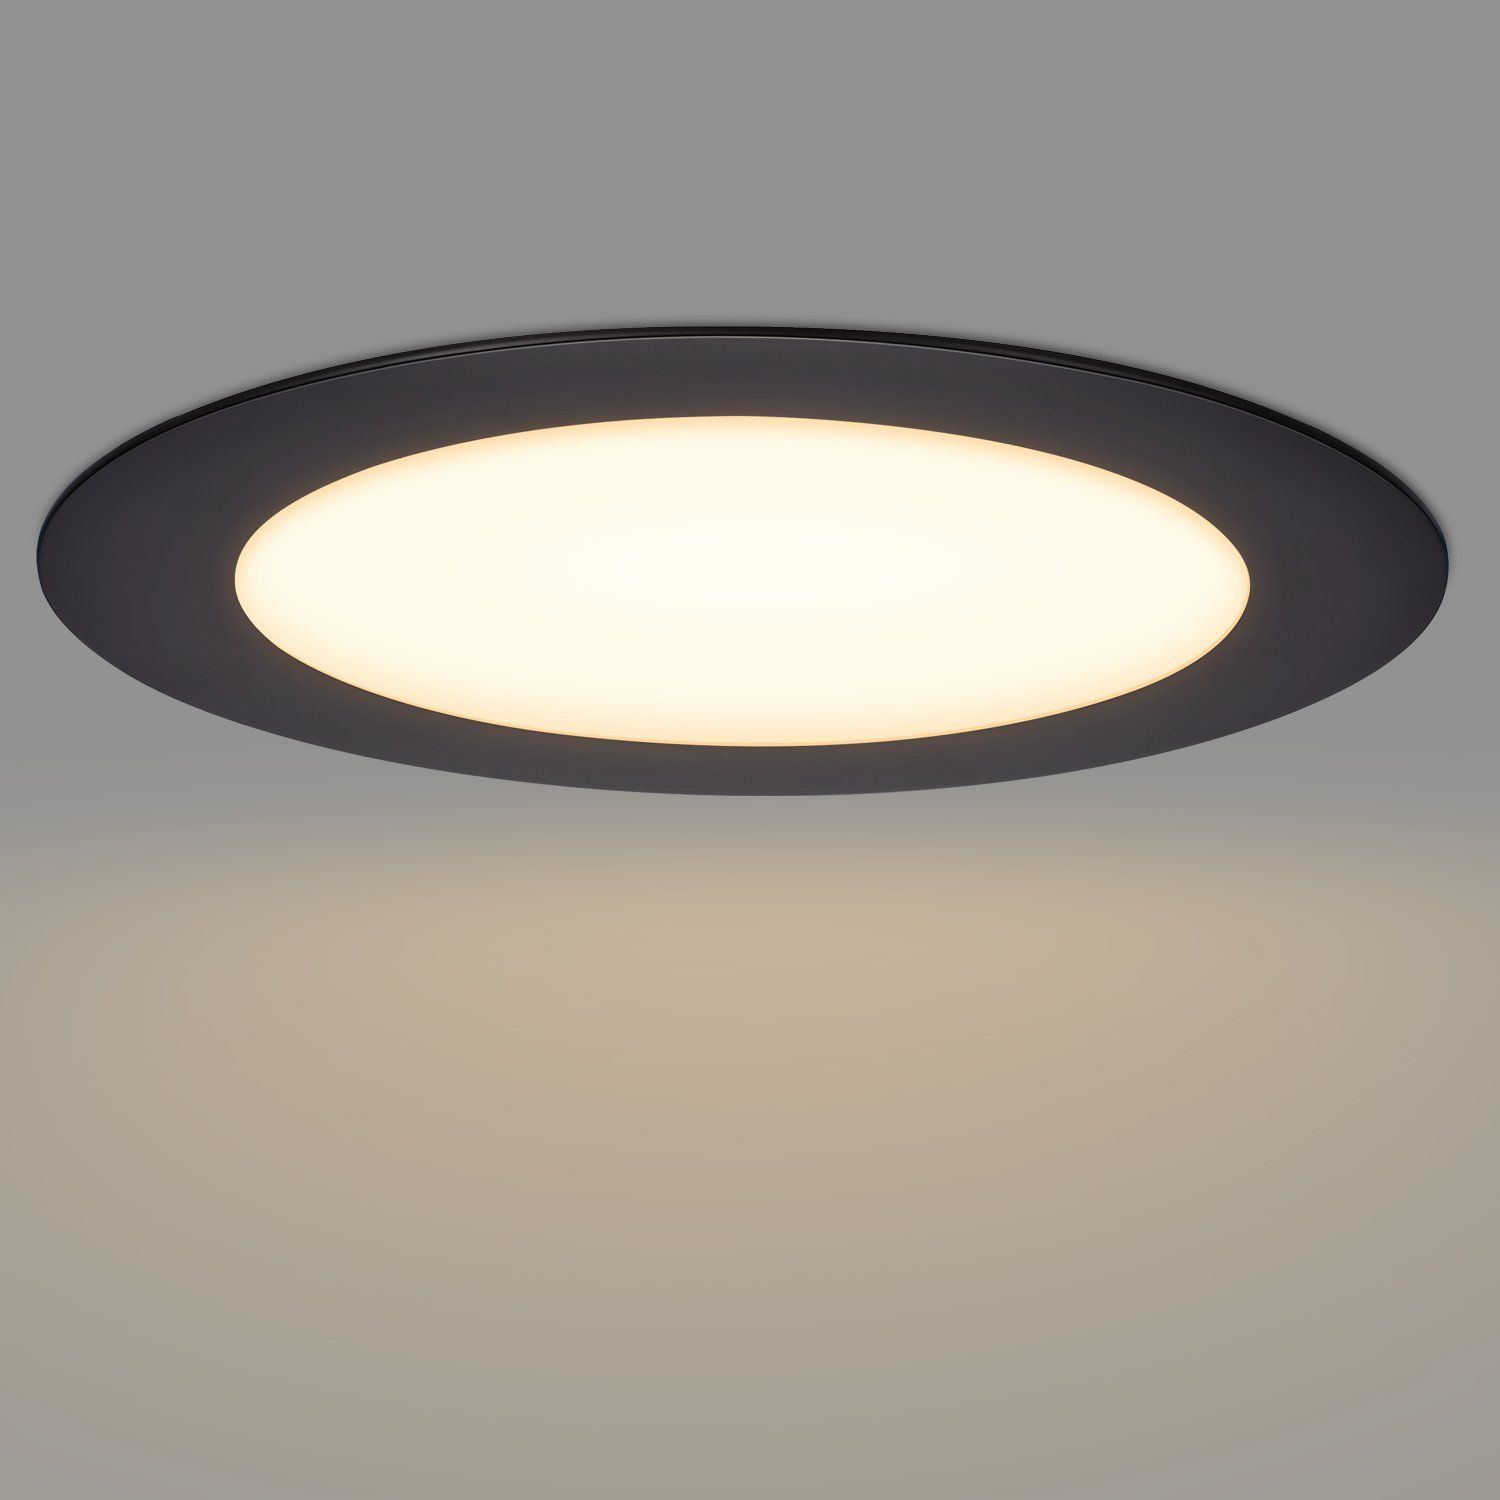 Getinlight Slim Dimmable 3 Inch Led Recessed Lighting Round Ceiling Panel Junction Box Included 4000kbri Led Recessed Lighting Recessed Lighting Light Fixtures